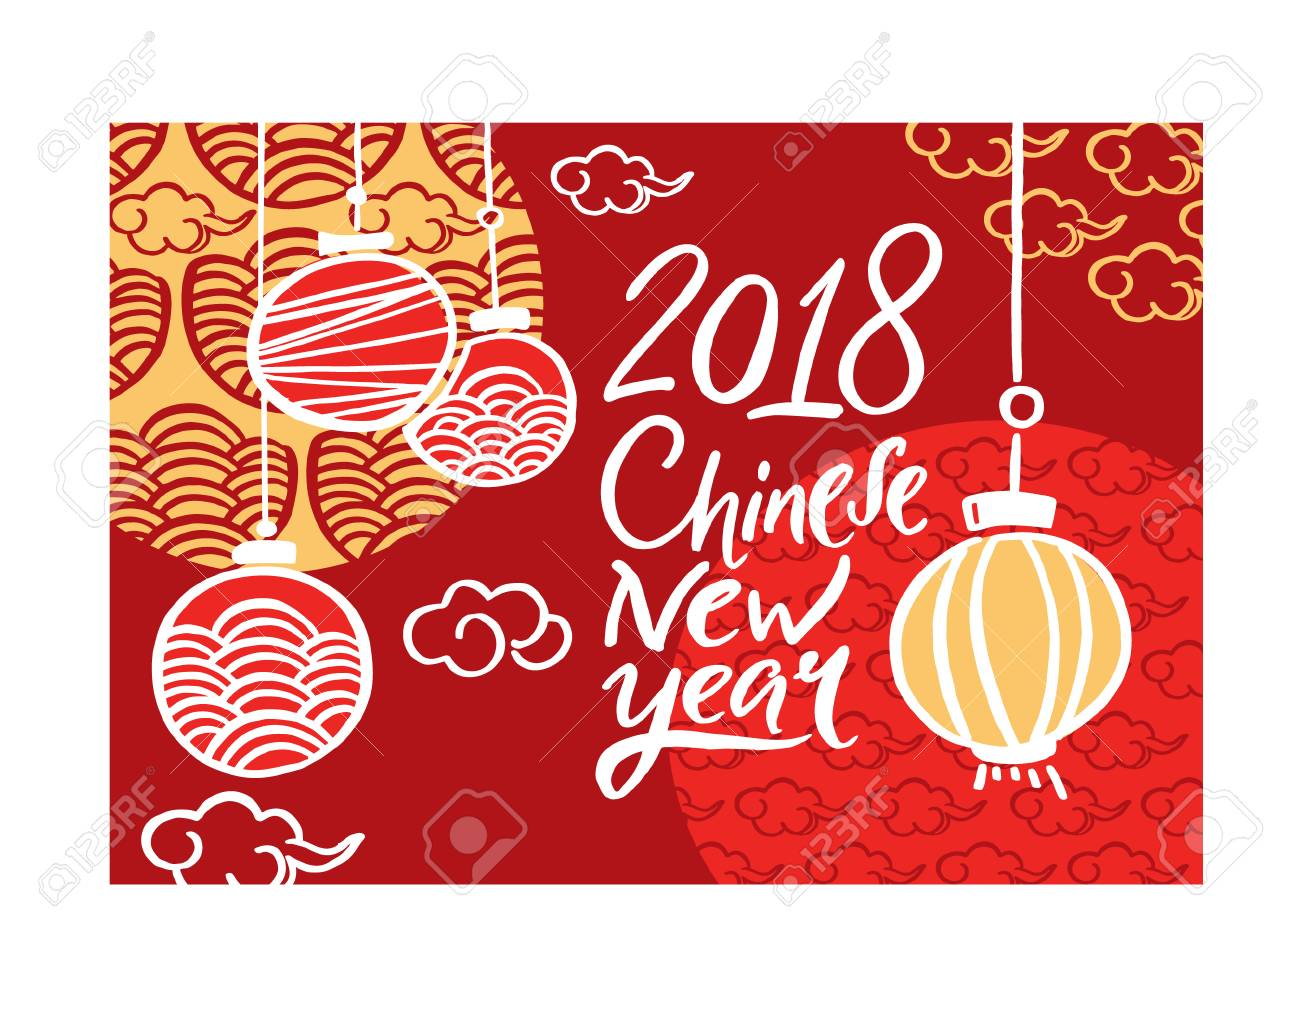 2018 chinese new year greeting card invitation design with paper cut sakura flowers vector